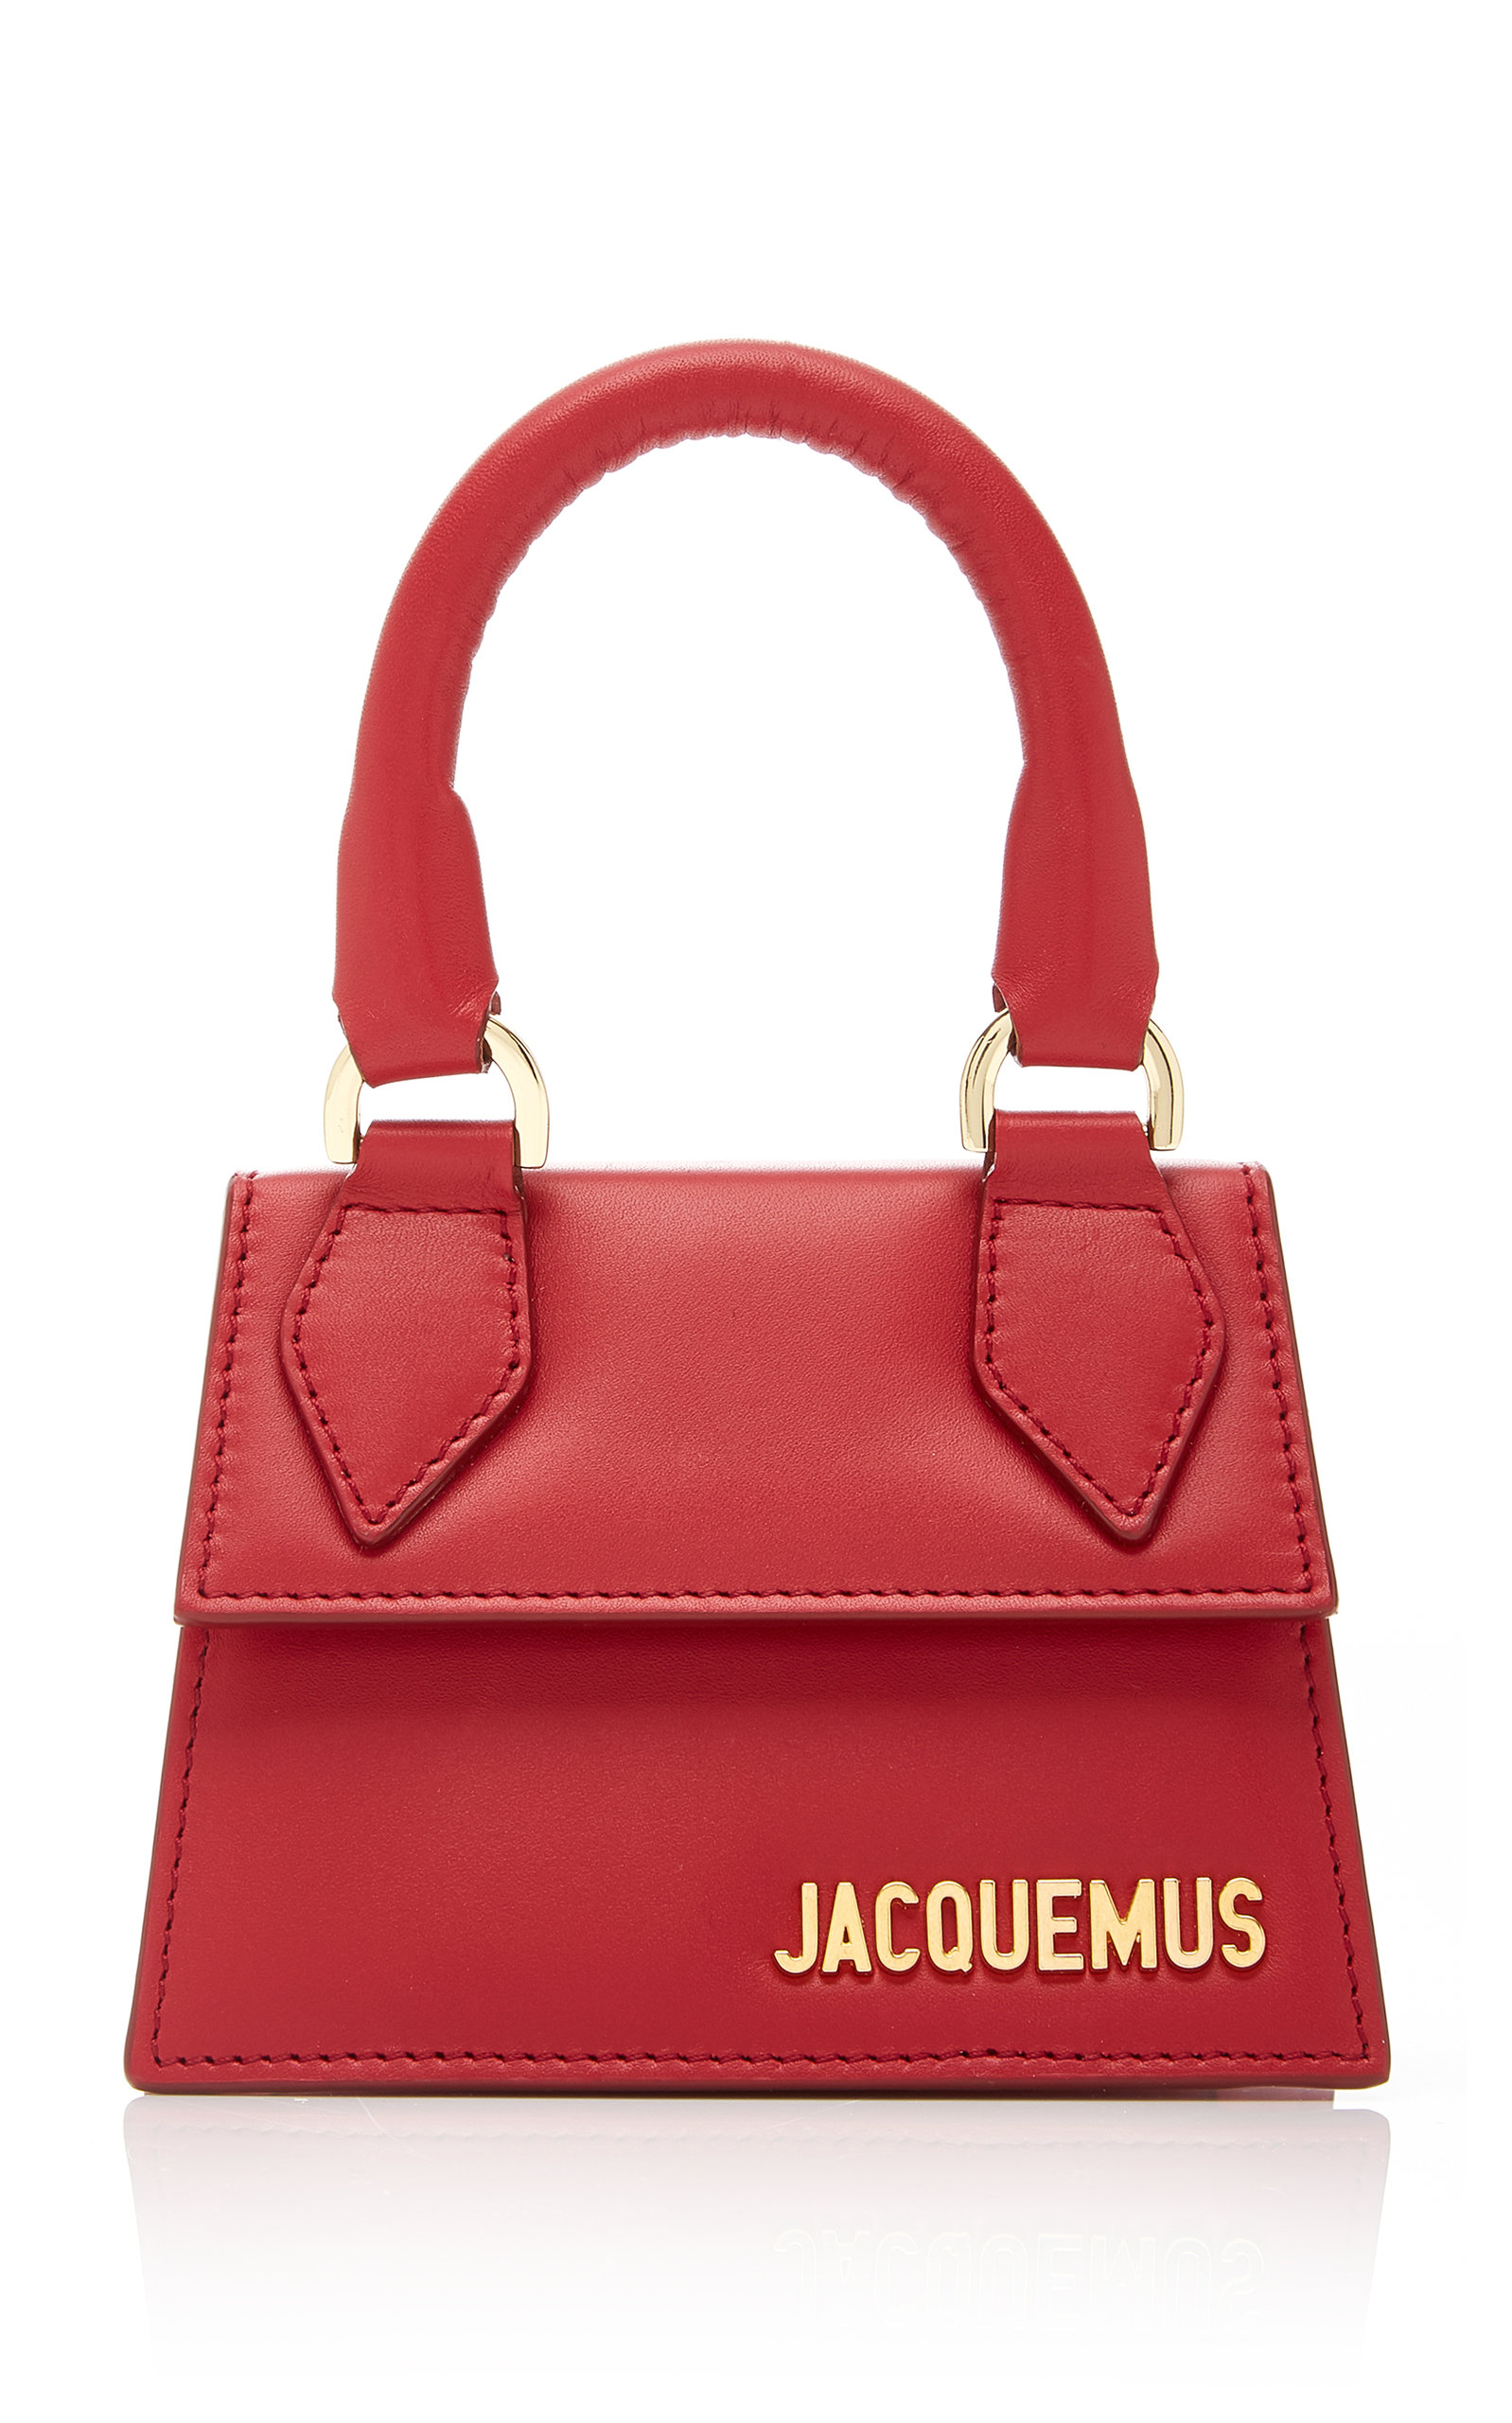 Le Chiquita Leather Tote by Jacquemus  c890cccd9e001